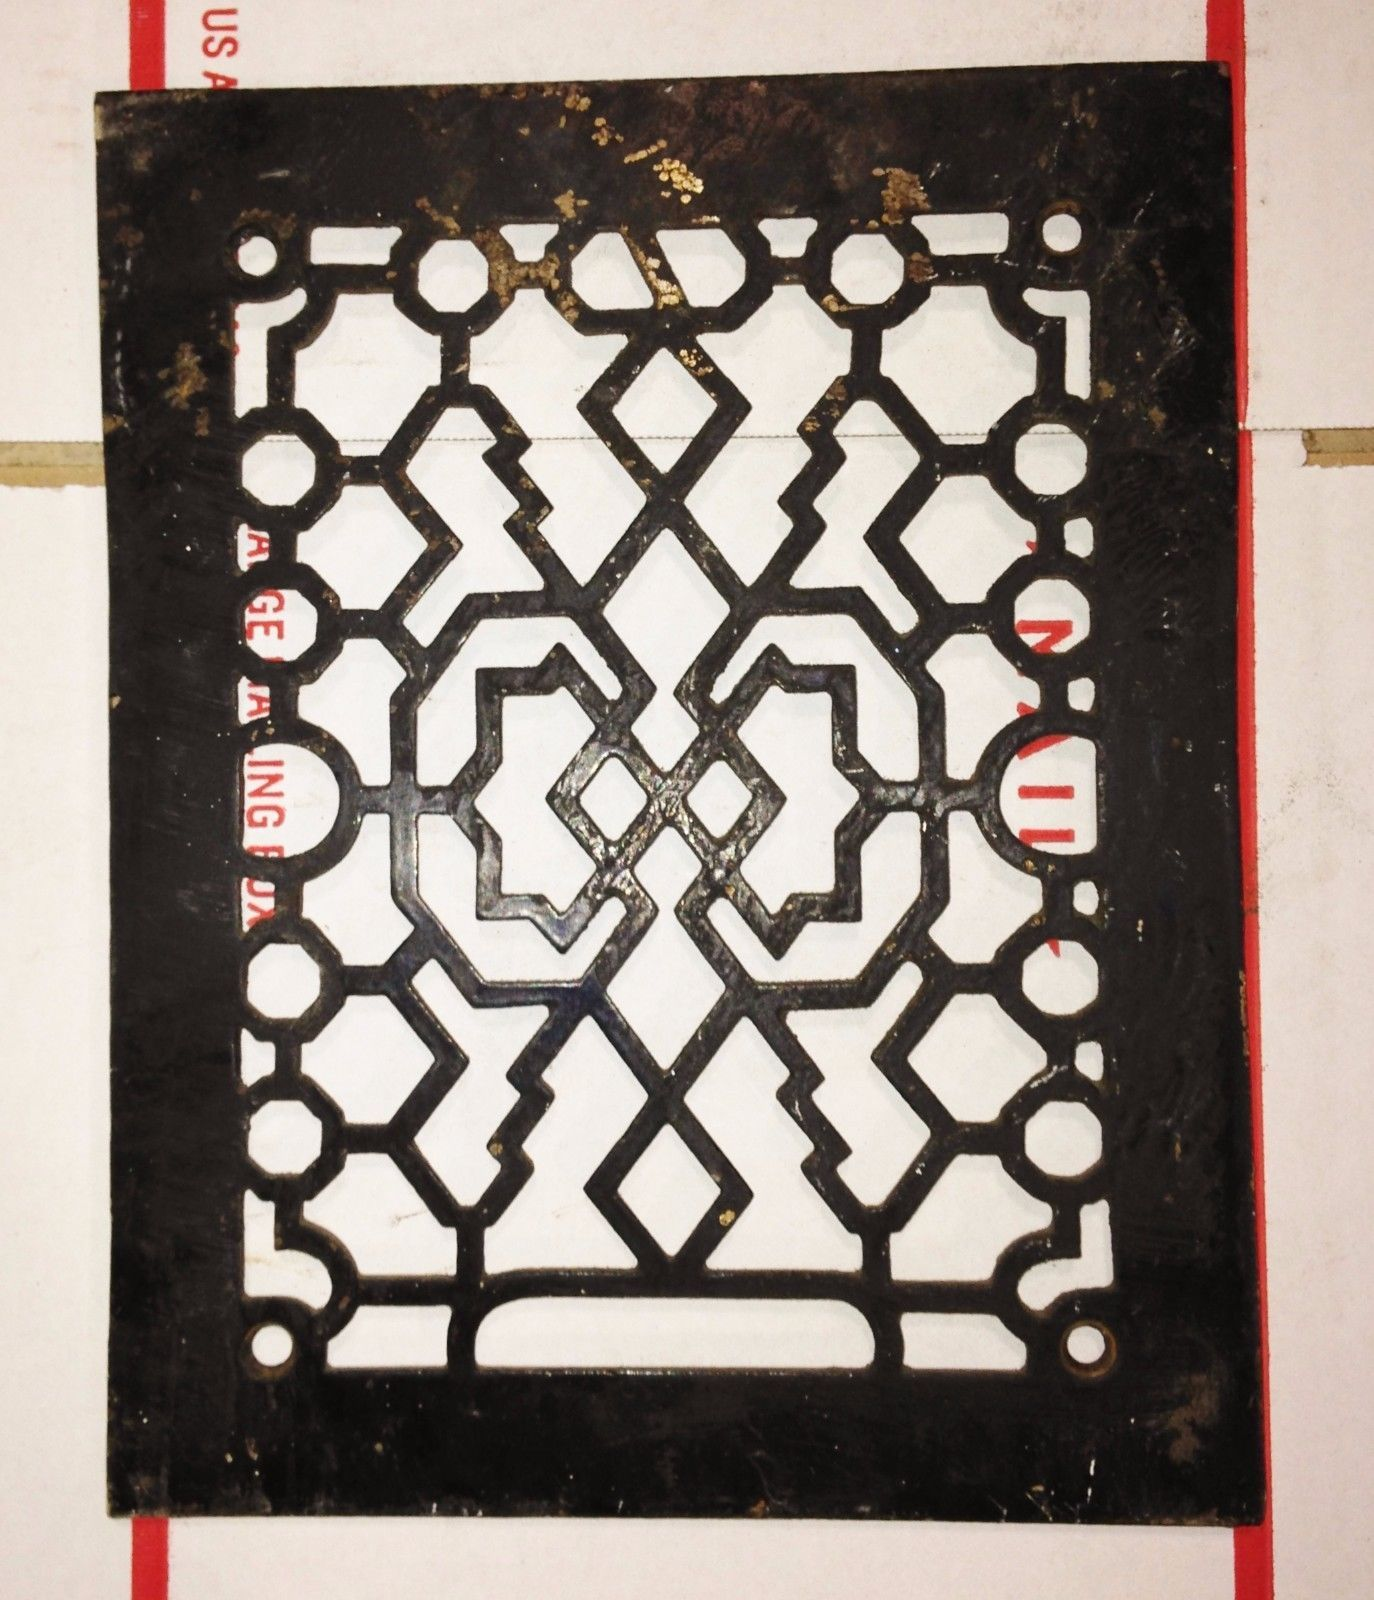 Antique Salvaged Vintage Floor Wall Grate Heat Air Return Register Vent Vintage Floor Air Return Flooring